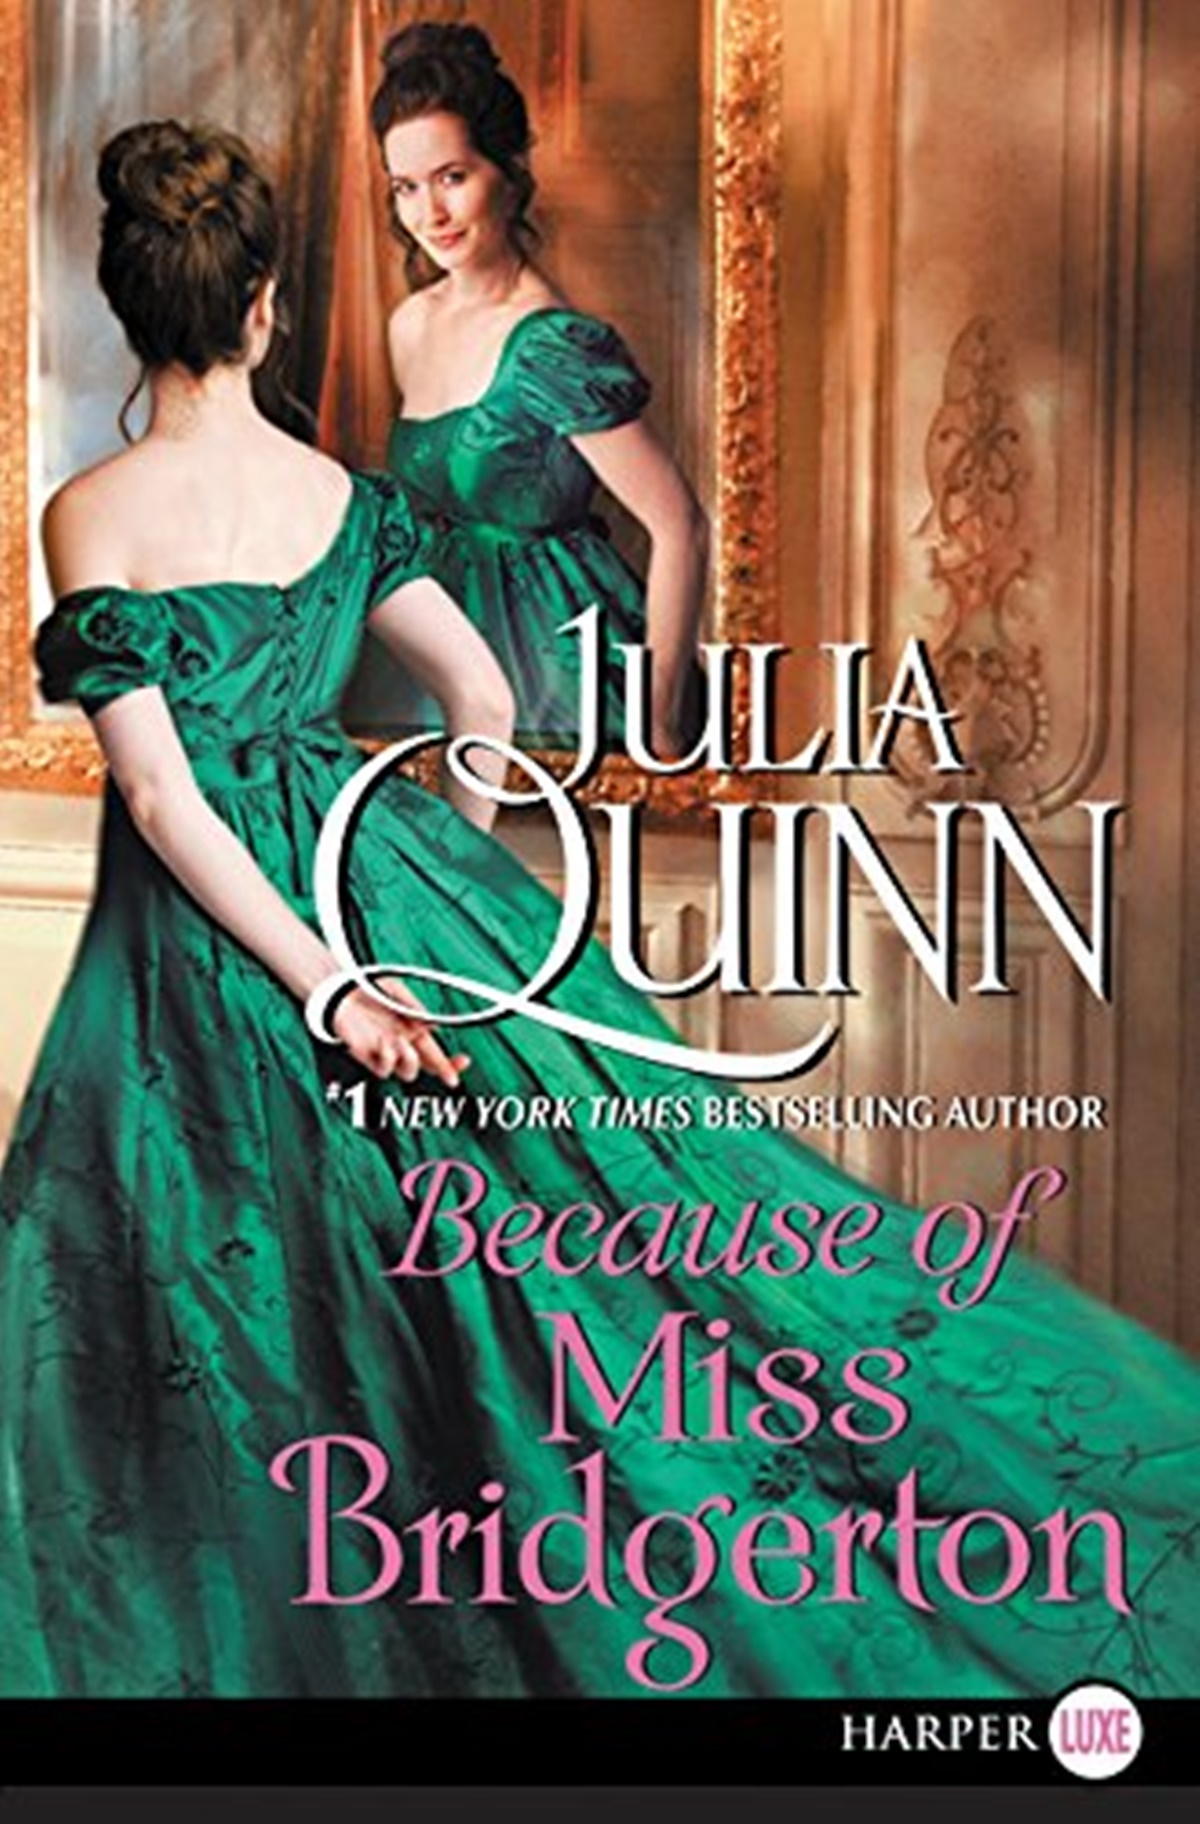 Julia Quinn Books, cover of Because of Miss Bridgerton by Julia Quinn, books